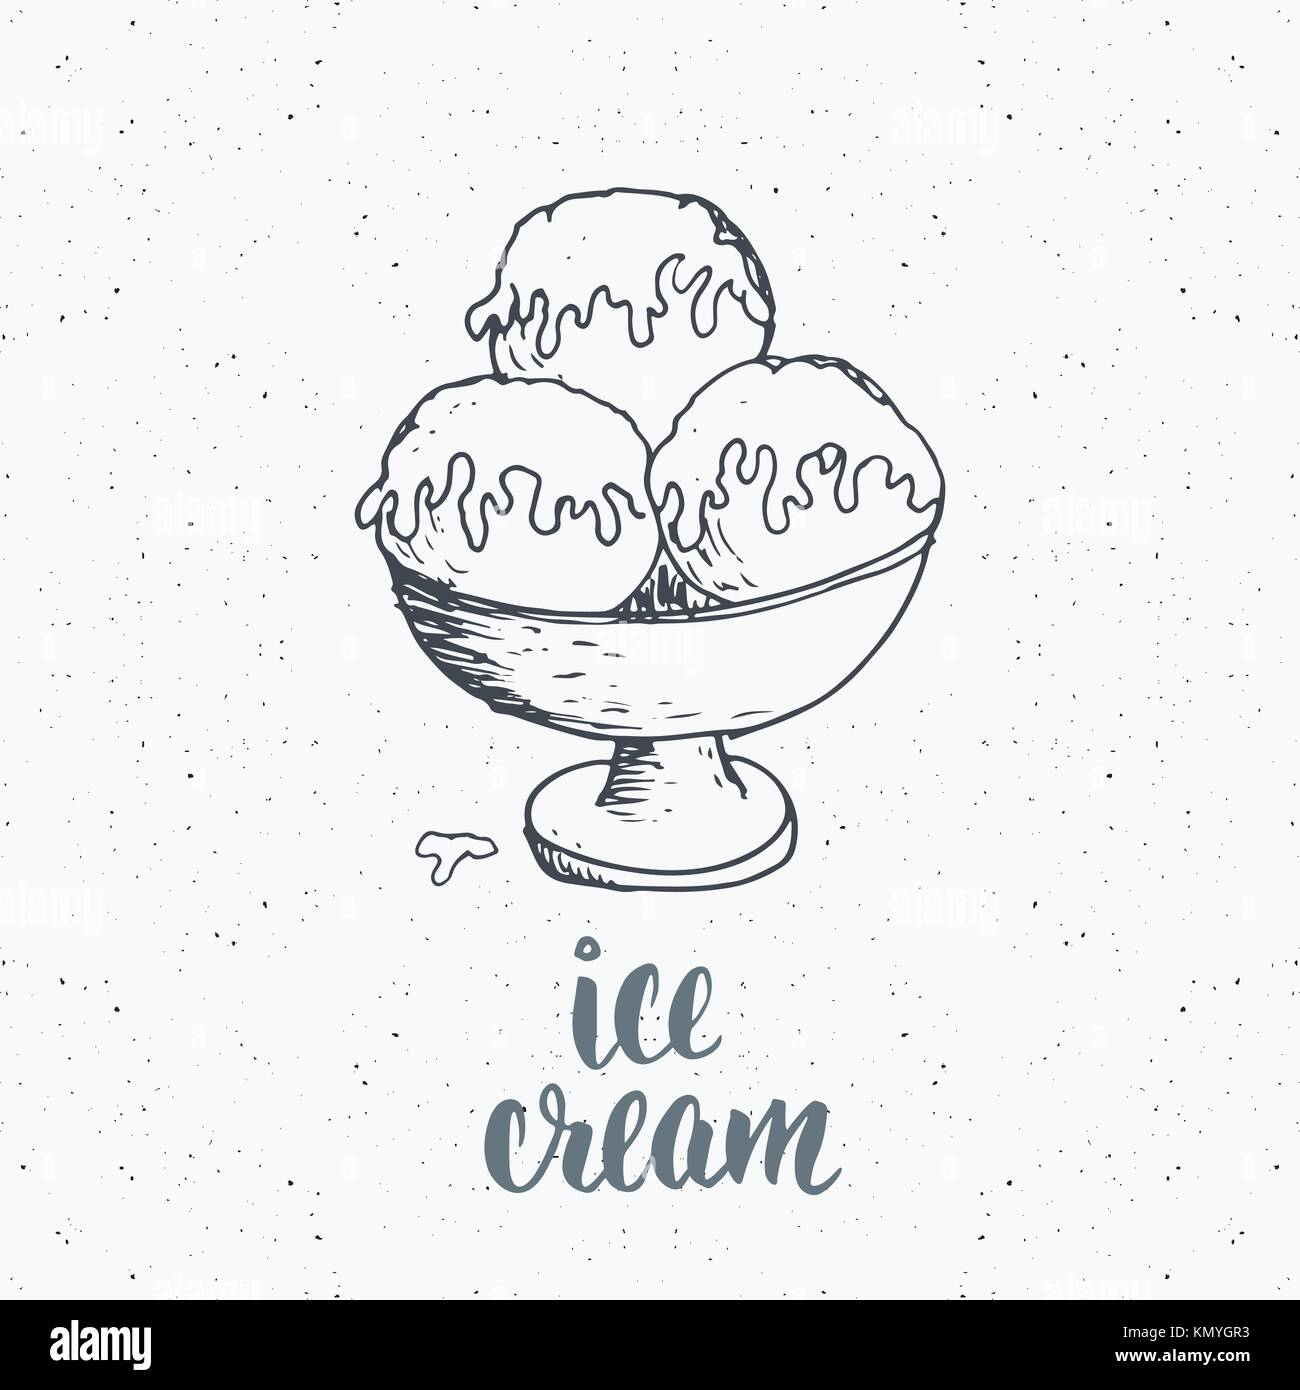 Ice cream with lettering sketch, Vintage label, Hand drawn